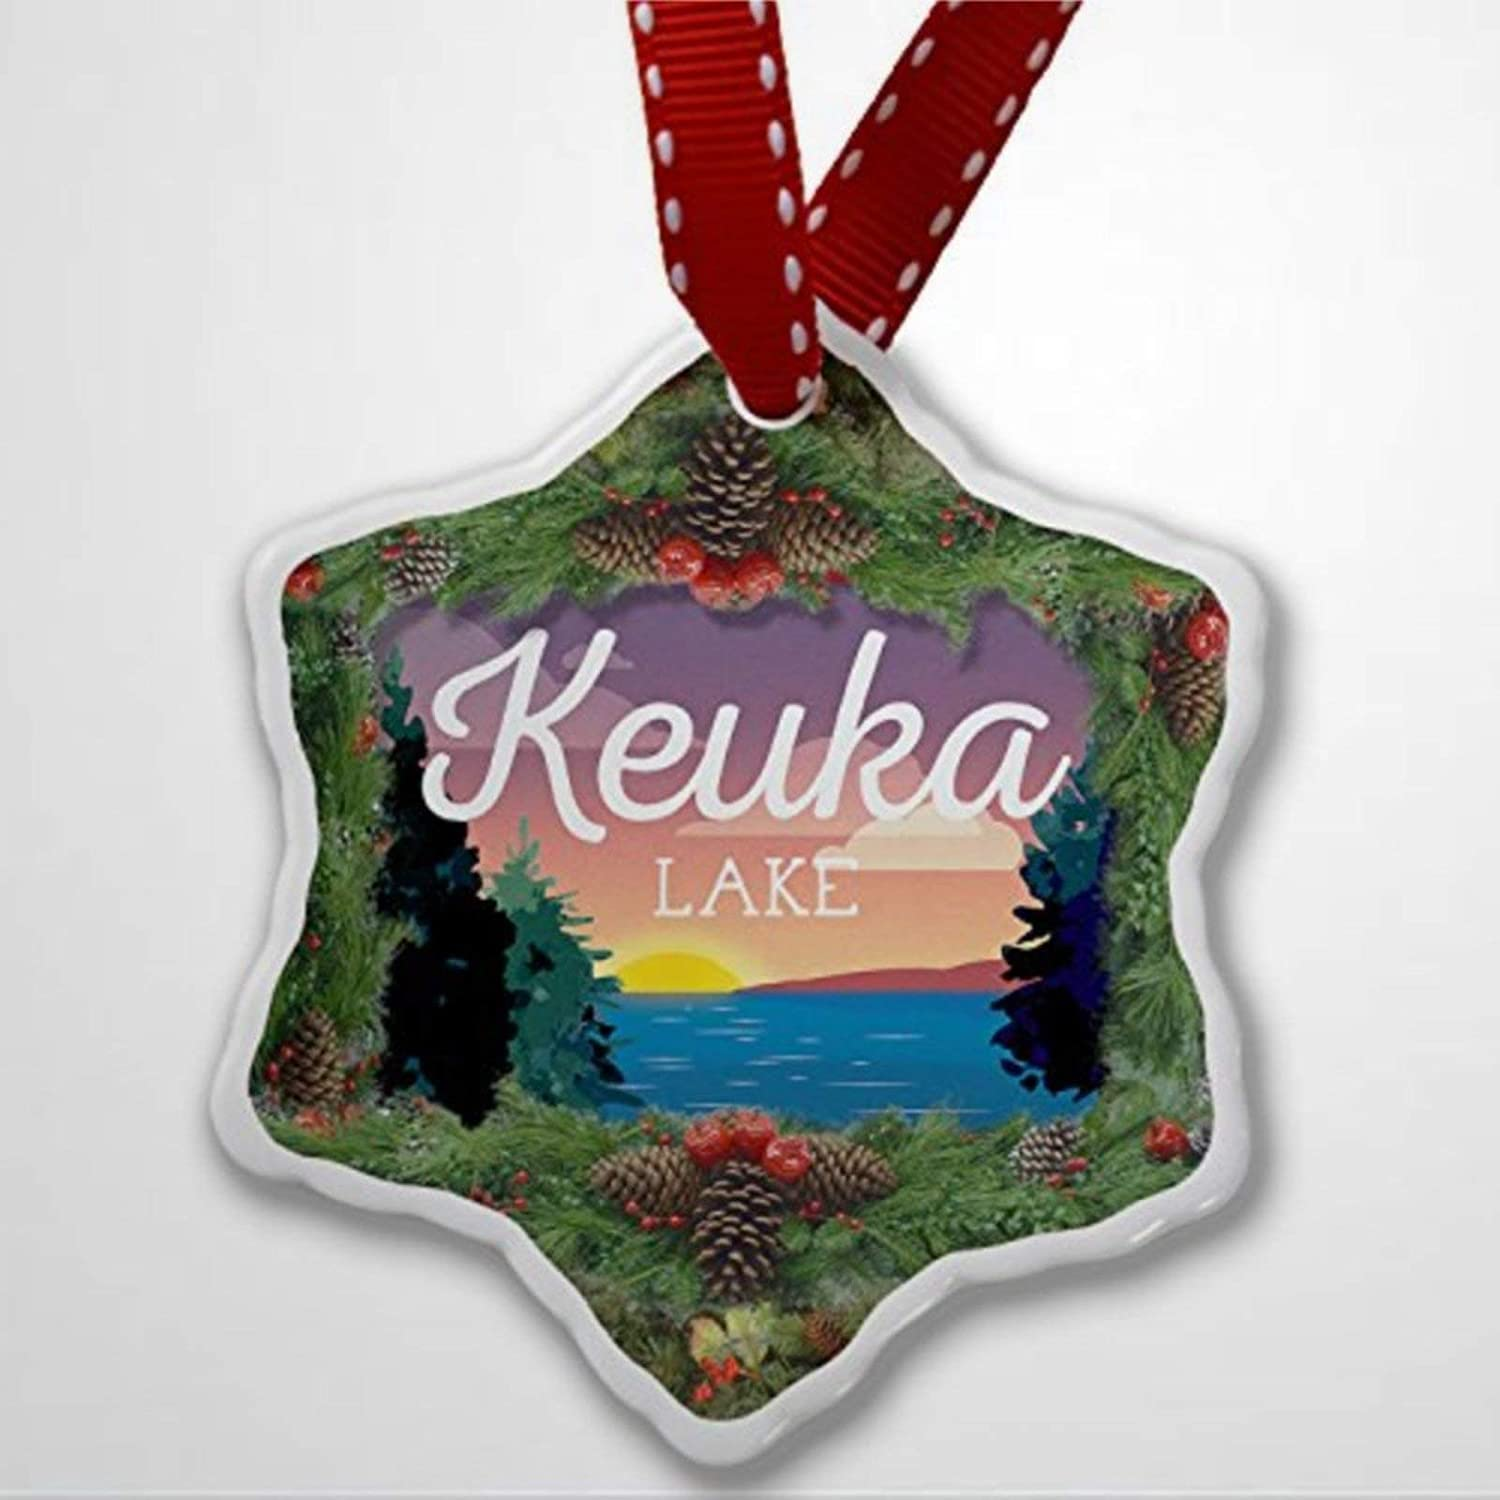 BYRON HOYLE Christmas Ornament Lake Retro Design Keuka Lake Christmas Ornaments Pandemic Xmas Decor Wedding Ornament Holiday Present